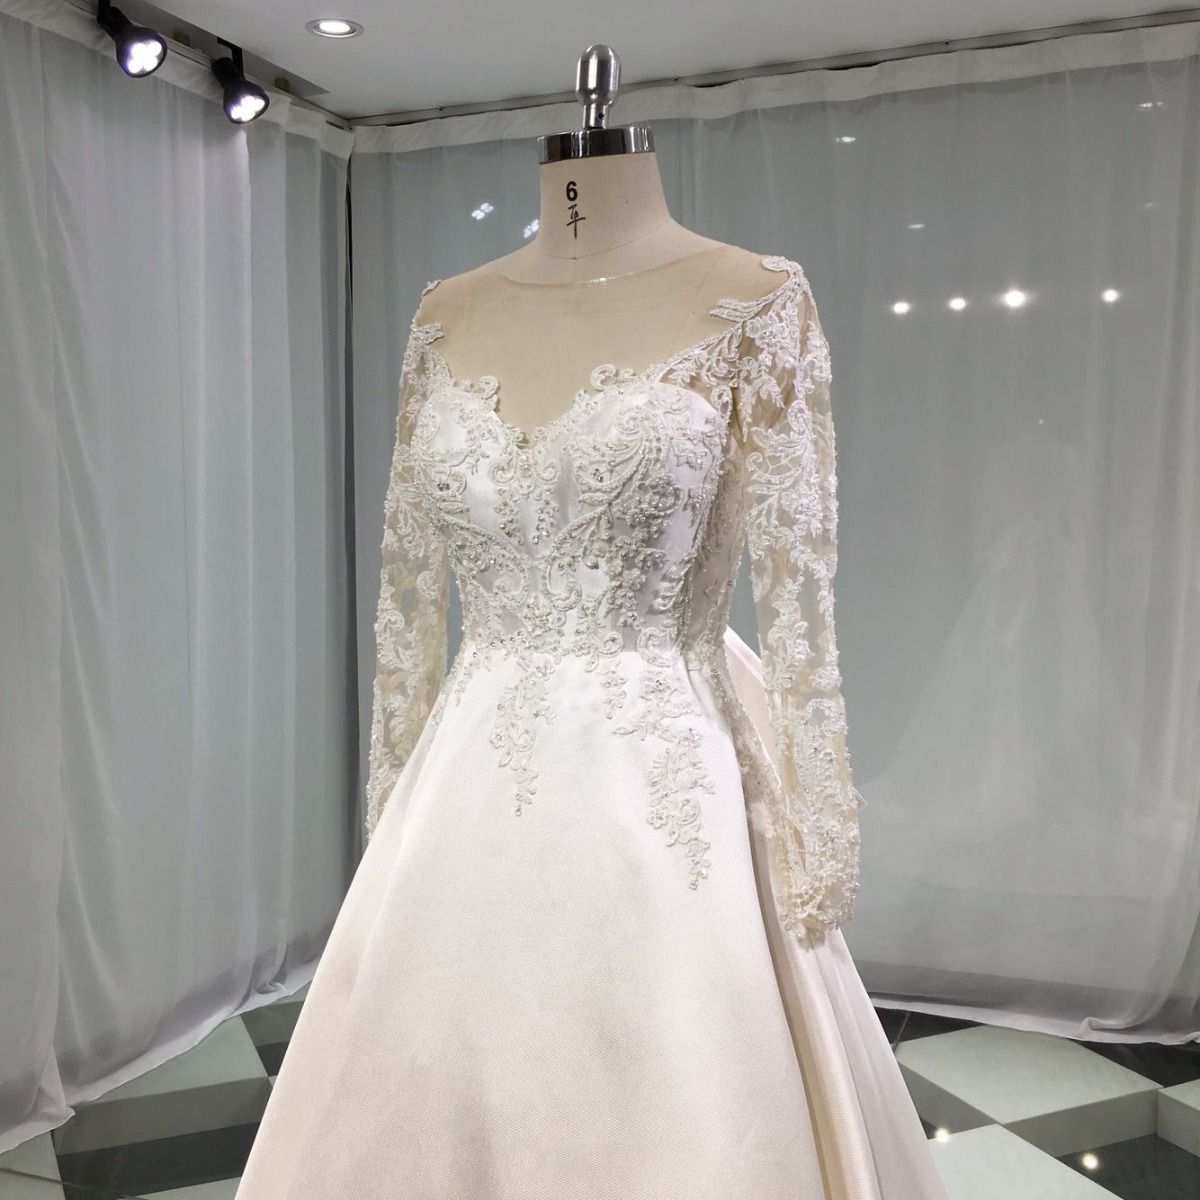 Elegant Ivory Satin See-through Wedding Dresses 2019 A-Line / Princess Scoop Neck Pierced Long Sleeve Backless Bow Appliques Lace Beading Chapel Train Ruffle